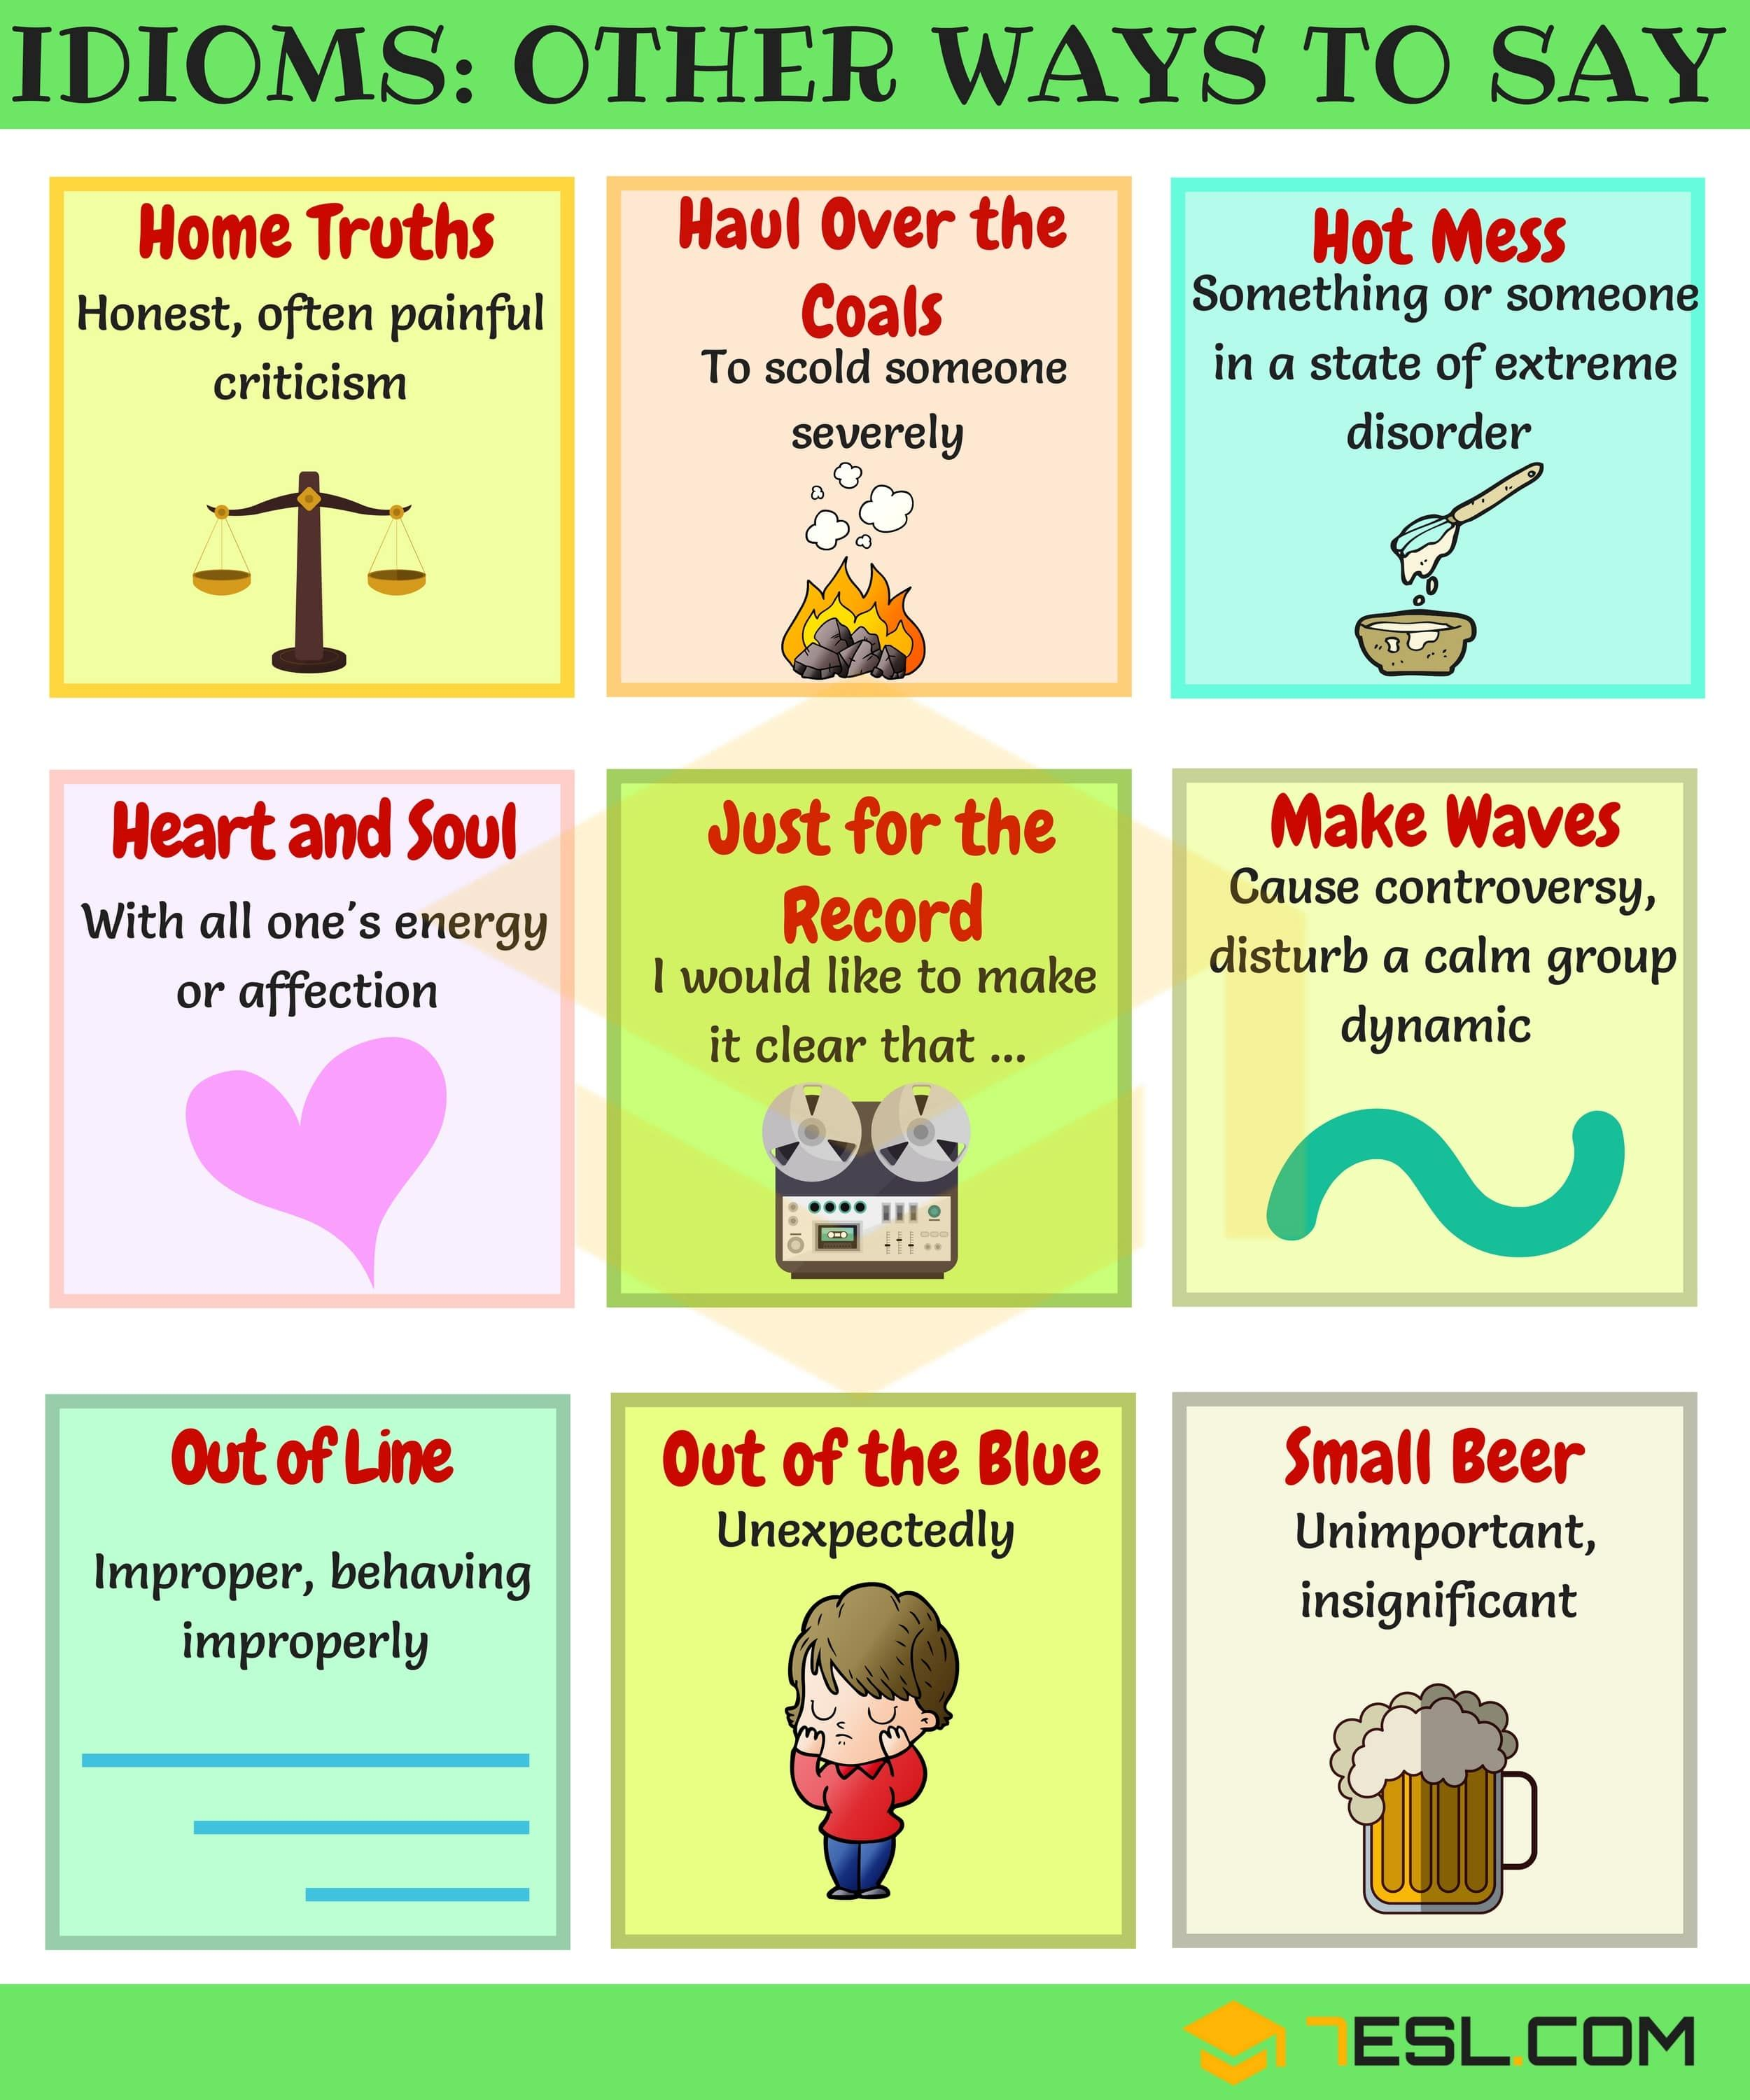 55+ Common Idiomatic Expressions in English | Other Ways to Say